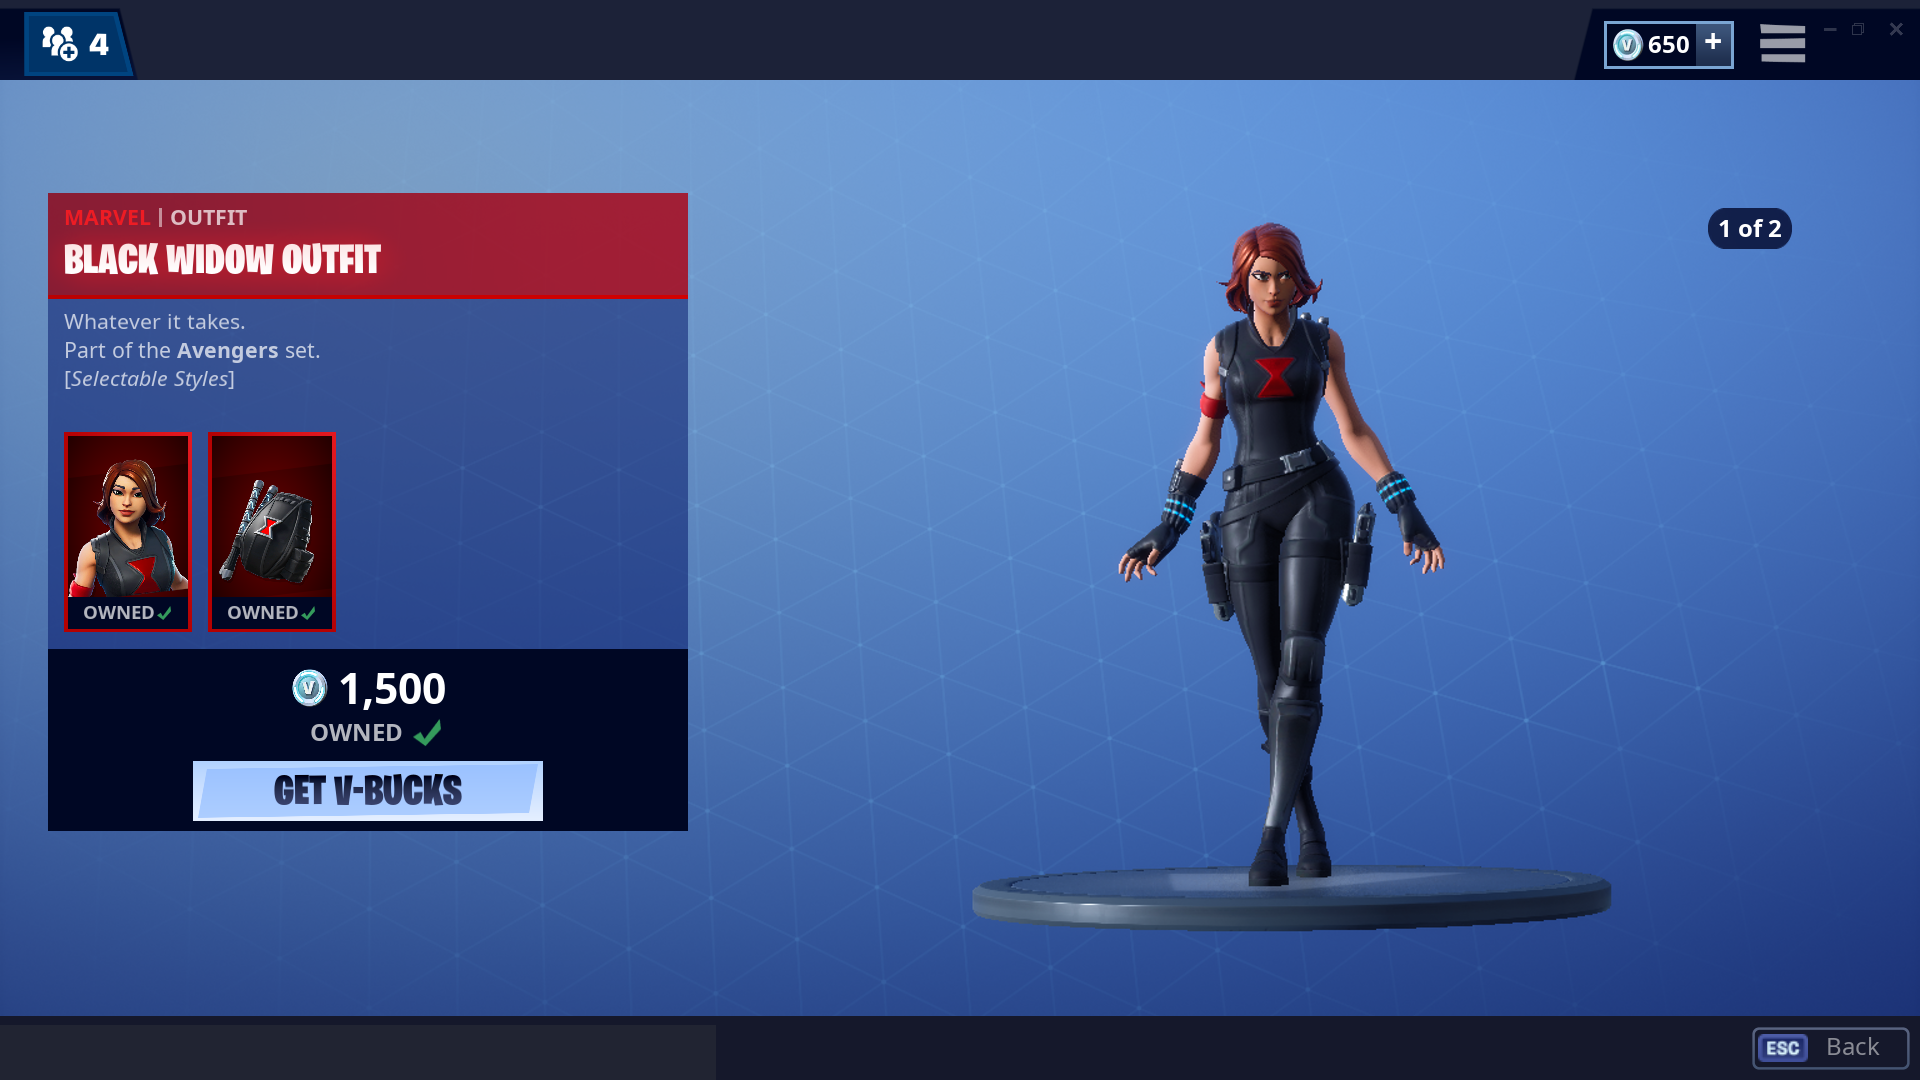 Fortnite has new Marvel skins, starting with Black Widow